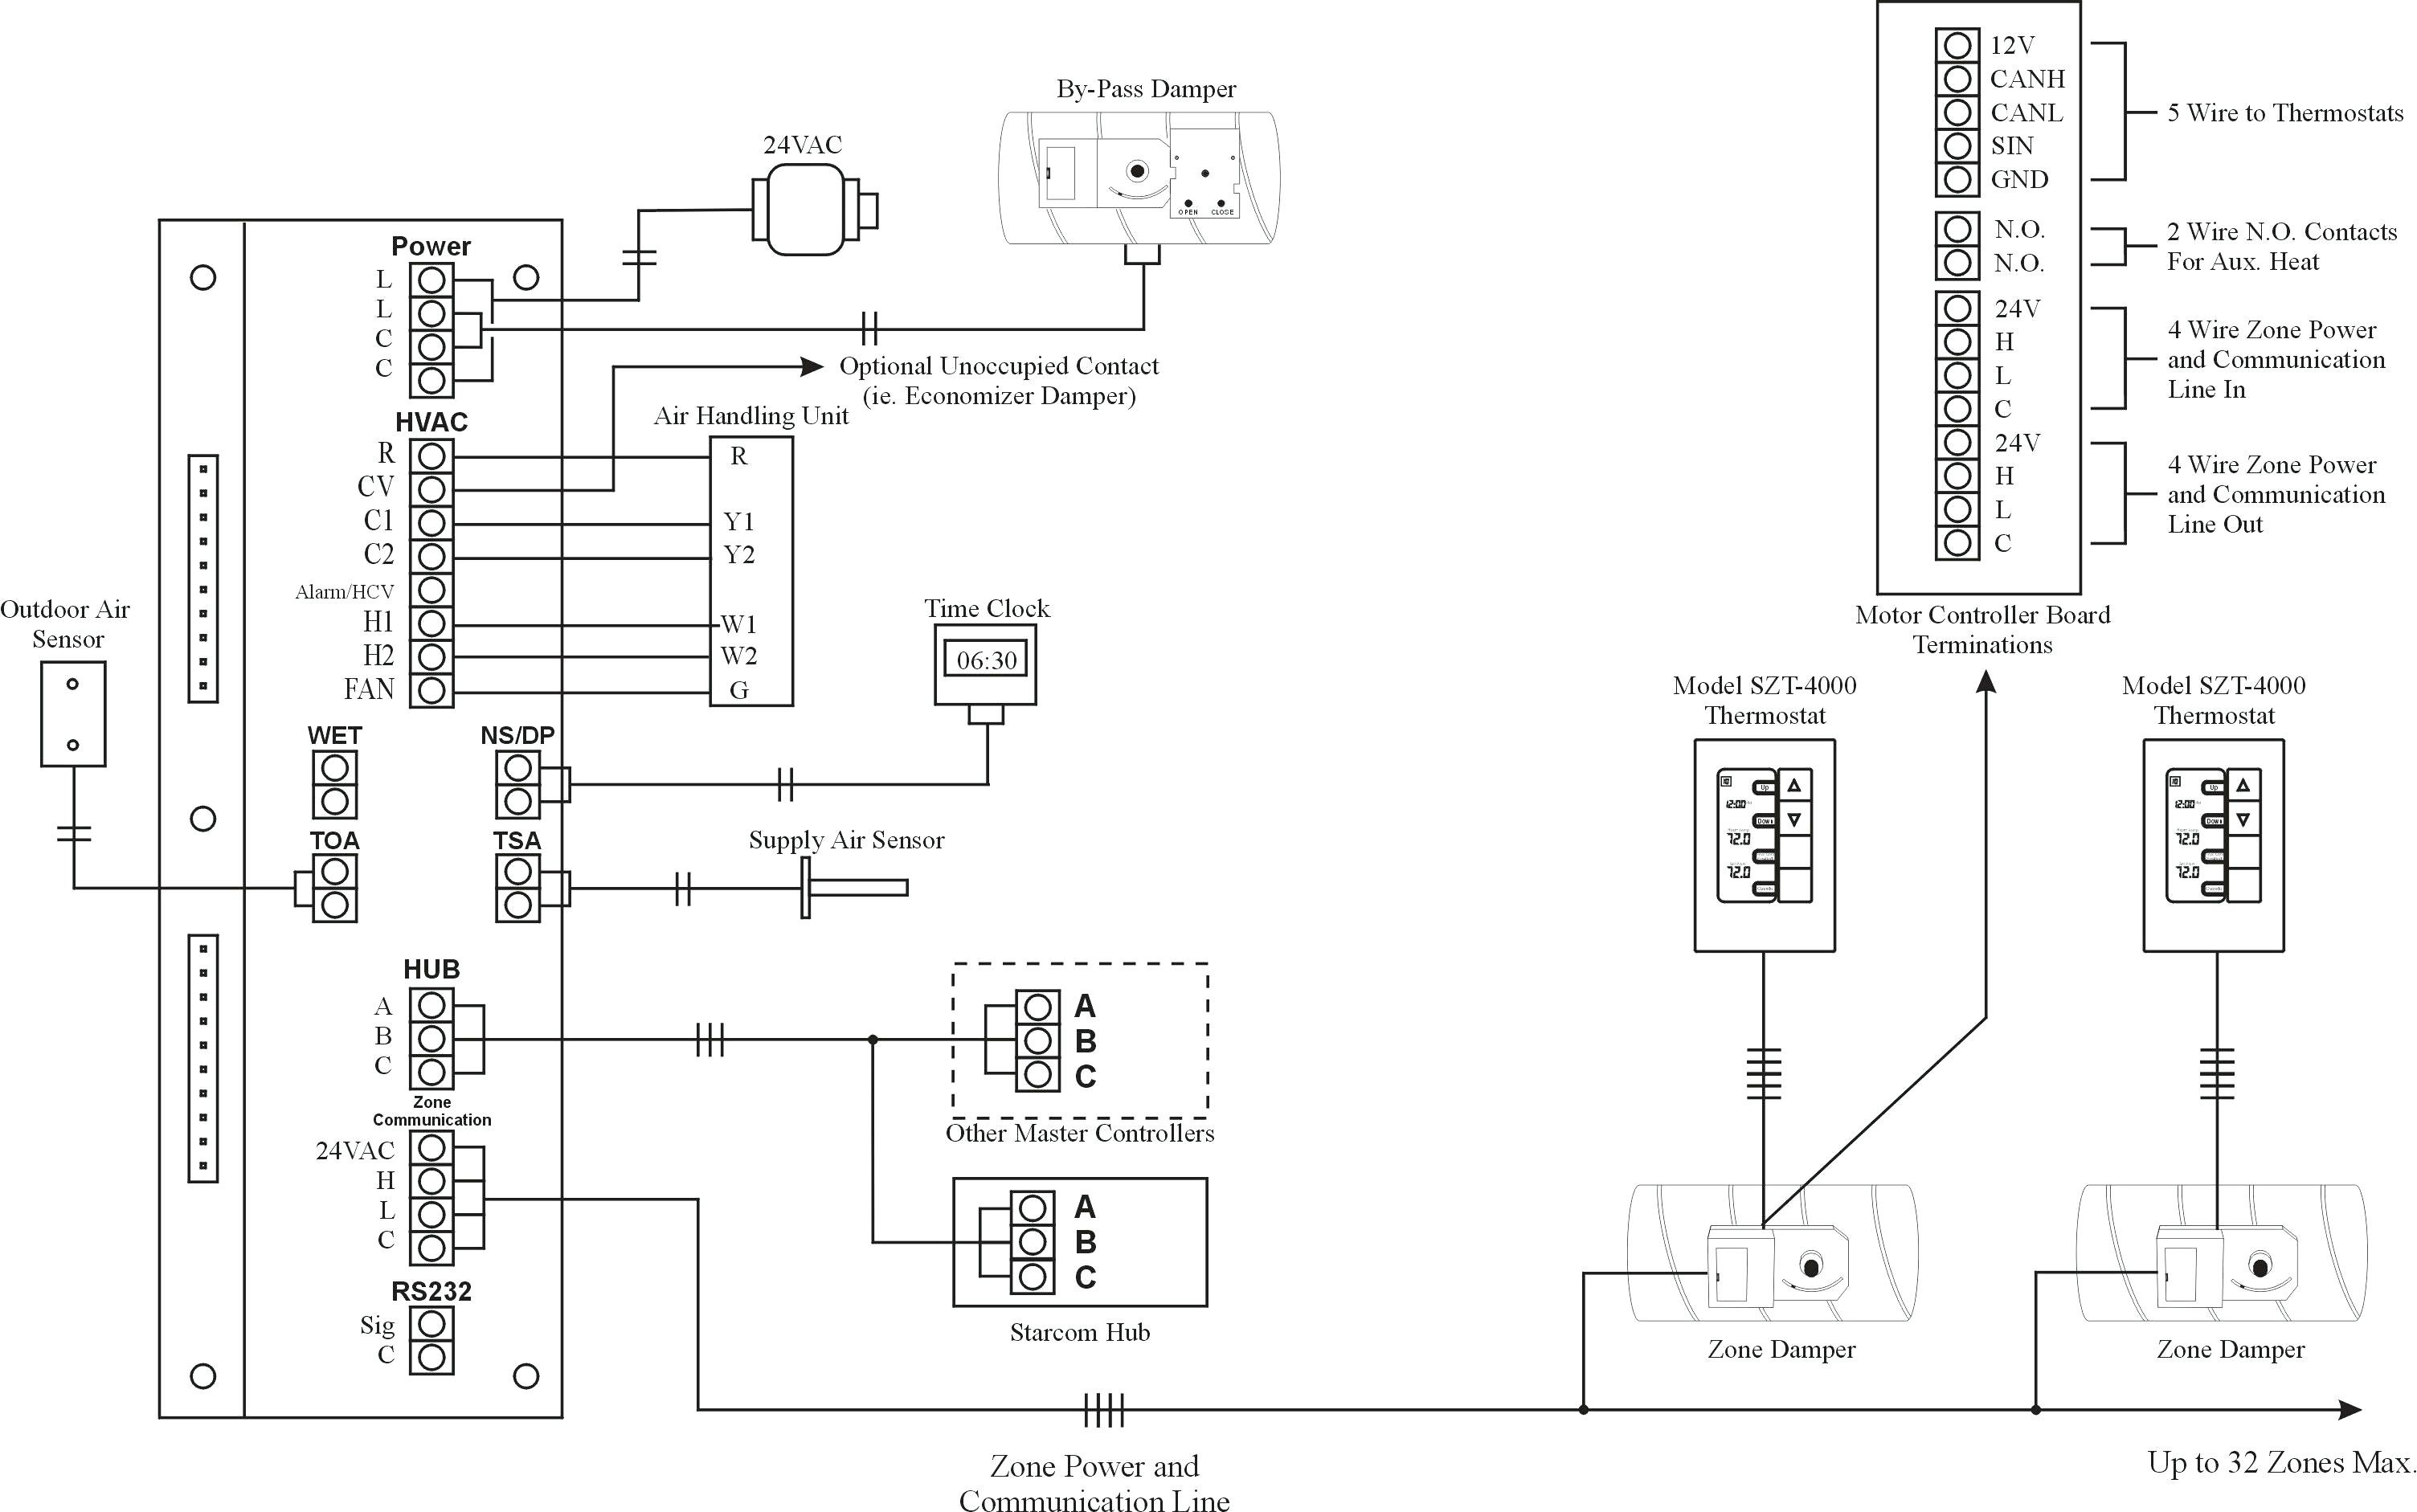 wiring diagram for cat5 ethernet cable